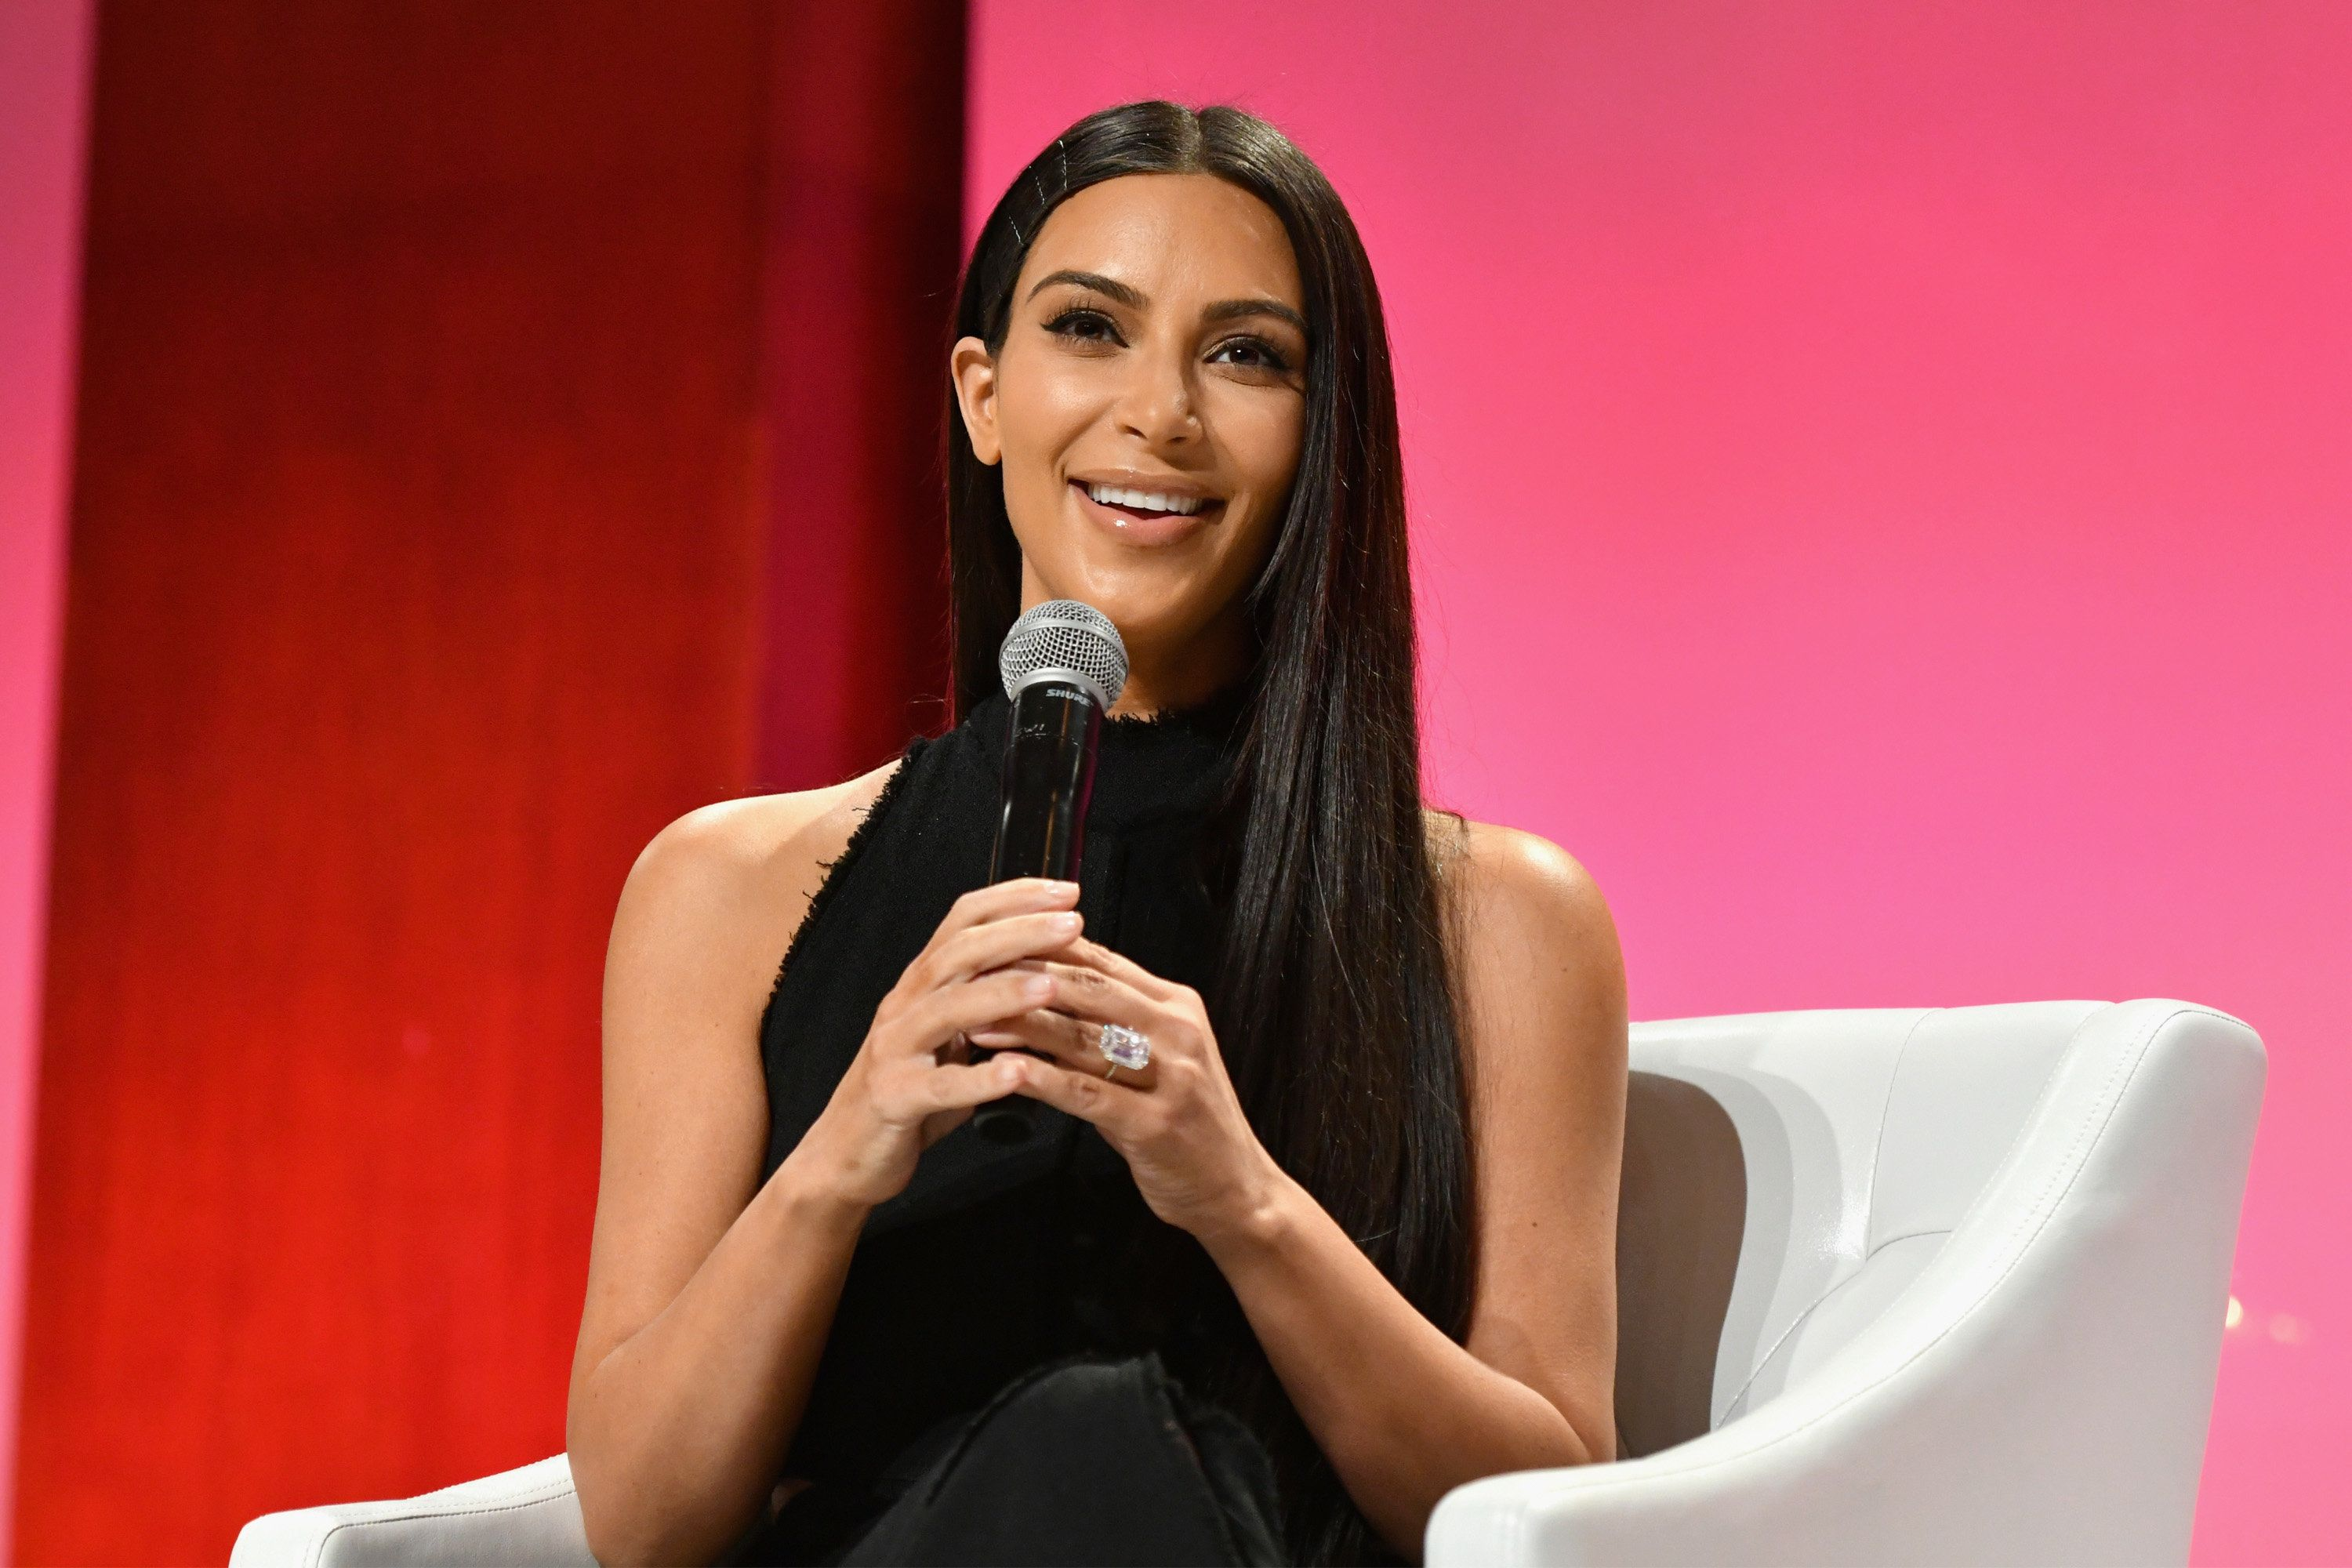 NEW YORK, NY - SEPTEMBER 27: (EXCLUSIVE ACCESS, SPECIAL RATES APPLY)  Kim Kardashian-West speaks at The Girls' Lounge dinner, giving visibility to women at Advertising Week 2016, at Pier 60 on September 27, 2016 in New York City.  (Photo by Slaven Vlasic/Getty Images for The Girls' Lounge)